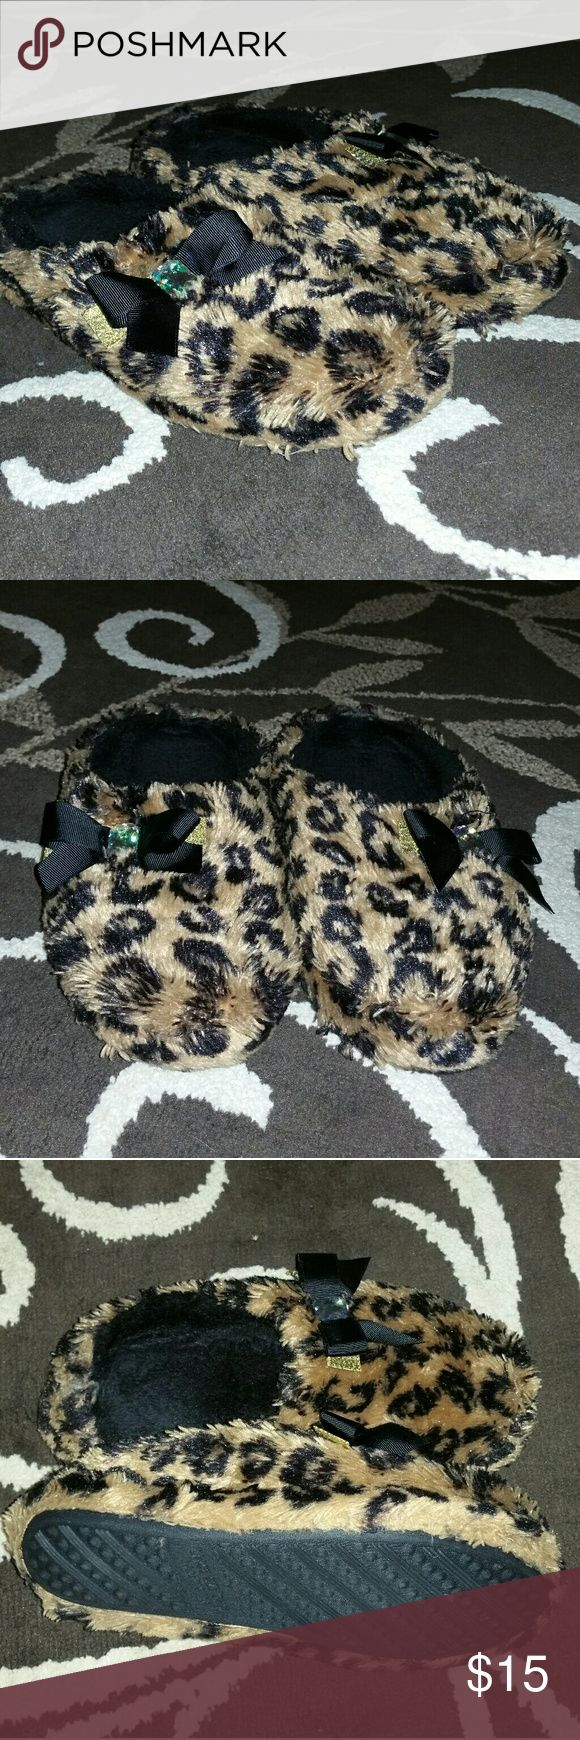 Women's Animal Print Slipper's Women's Animal Print Slipper's. Size Large (9-10)  worn only a few times, Freshly washed, still in great conditions, very nice thick cushioning. Have any questions before purchase, just ask and I'll try to answer!!! Shoes Slippers